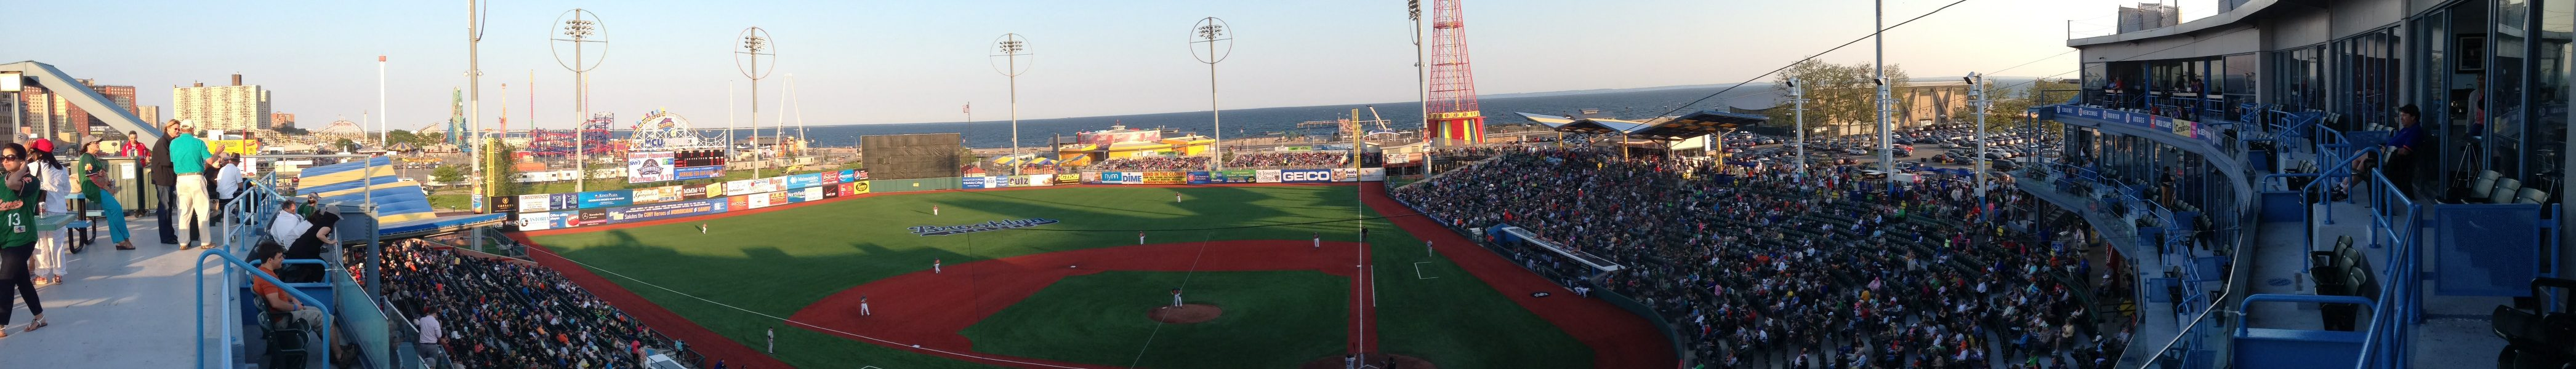 field view of MCU Park, home of the Brooklyn Cyclonces